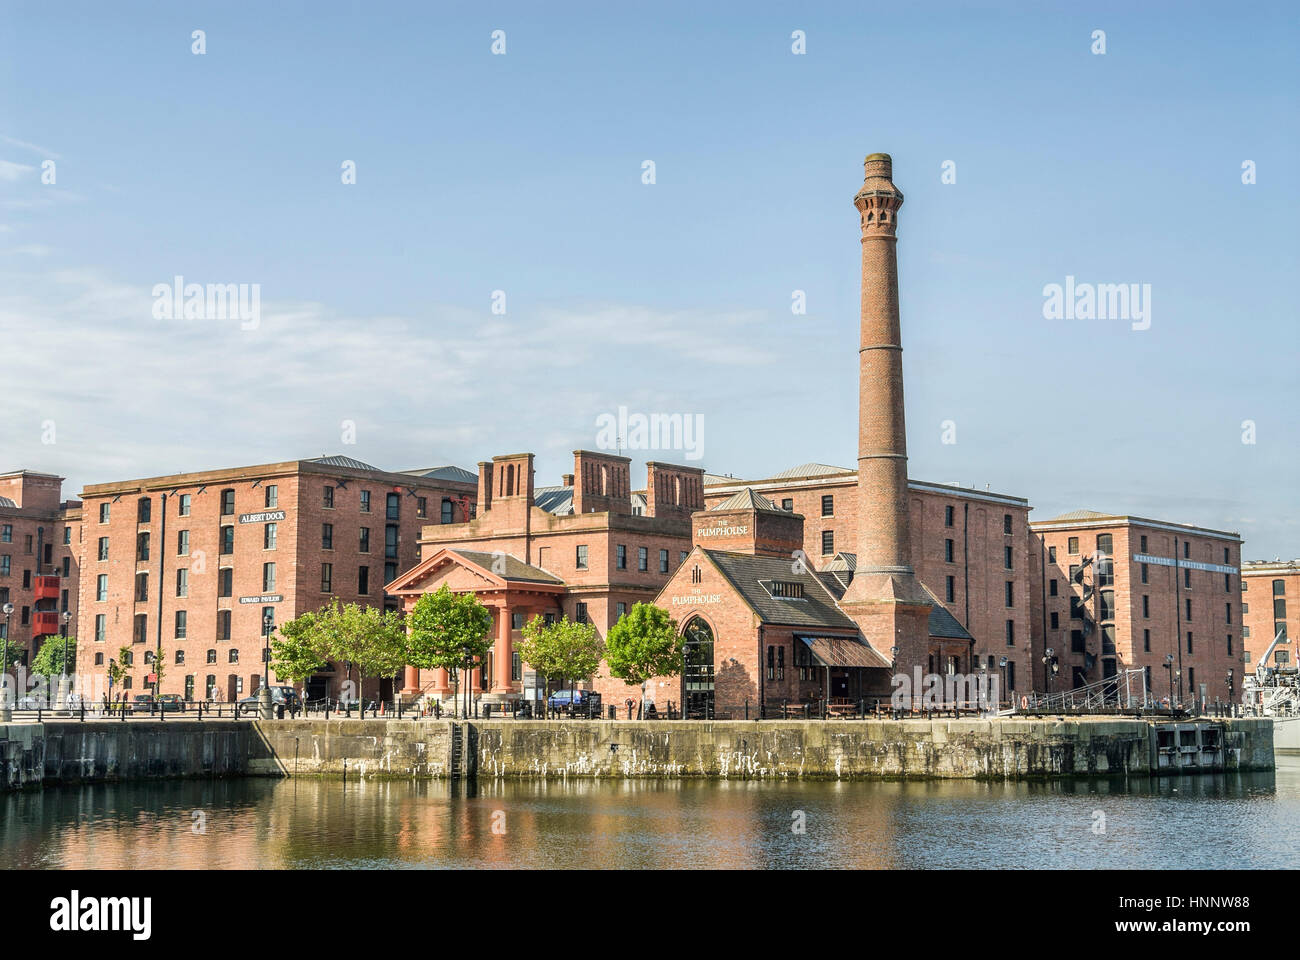 The Pumphouse at the Albert Dock, a complex of dock buildings and warehouses in Liverpool, England. Designed by Stock Photo